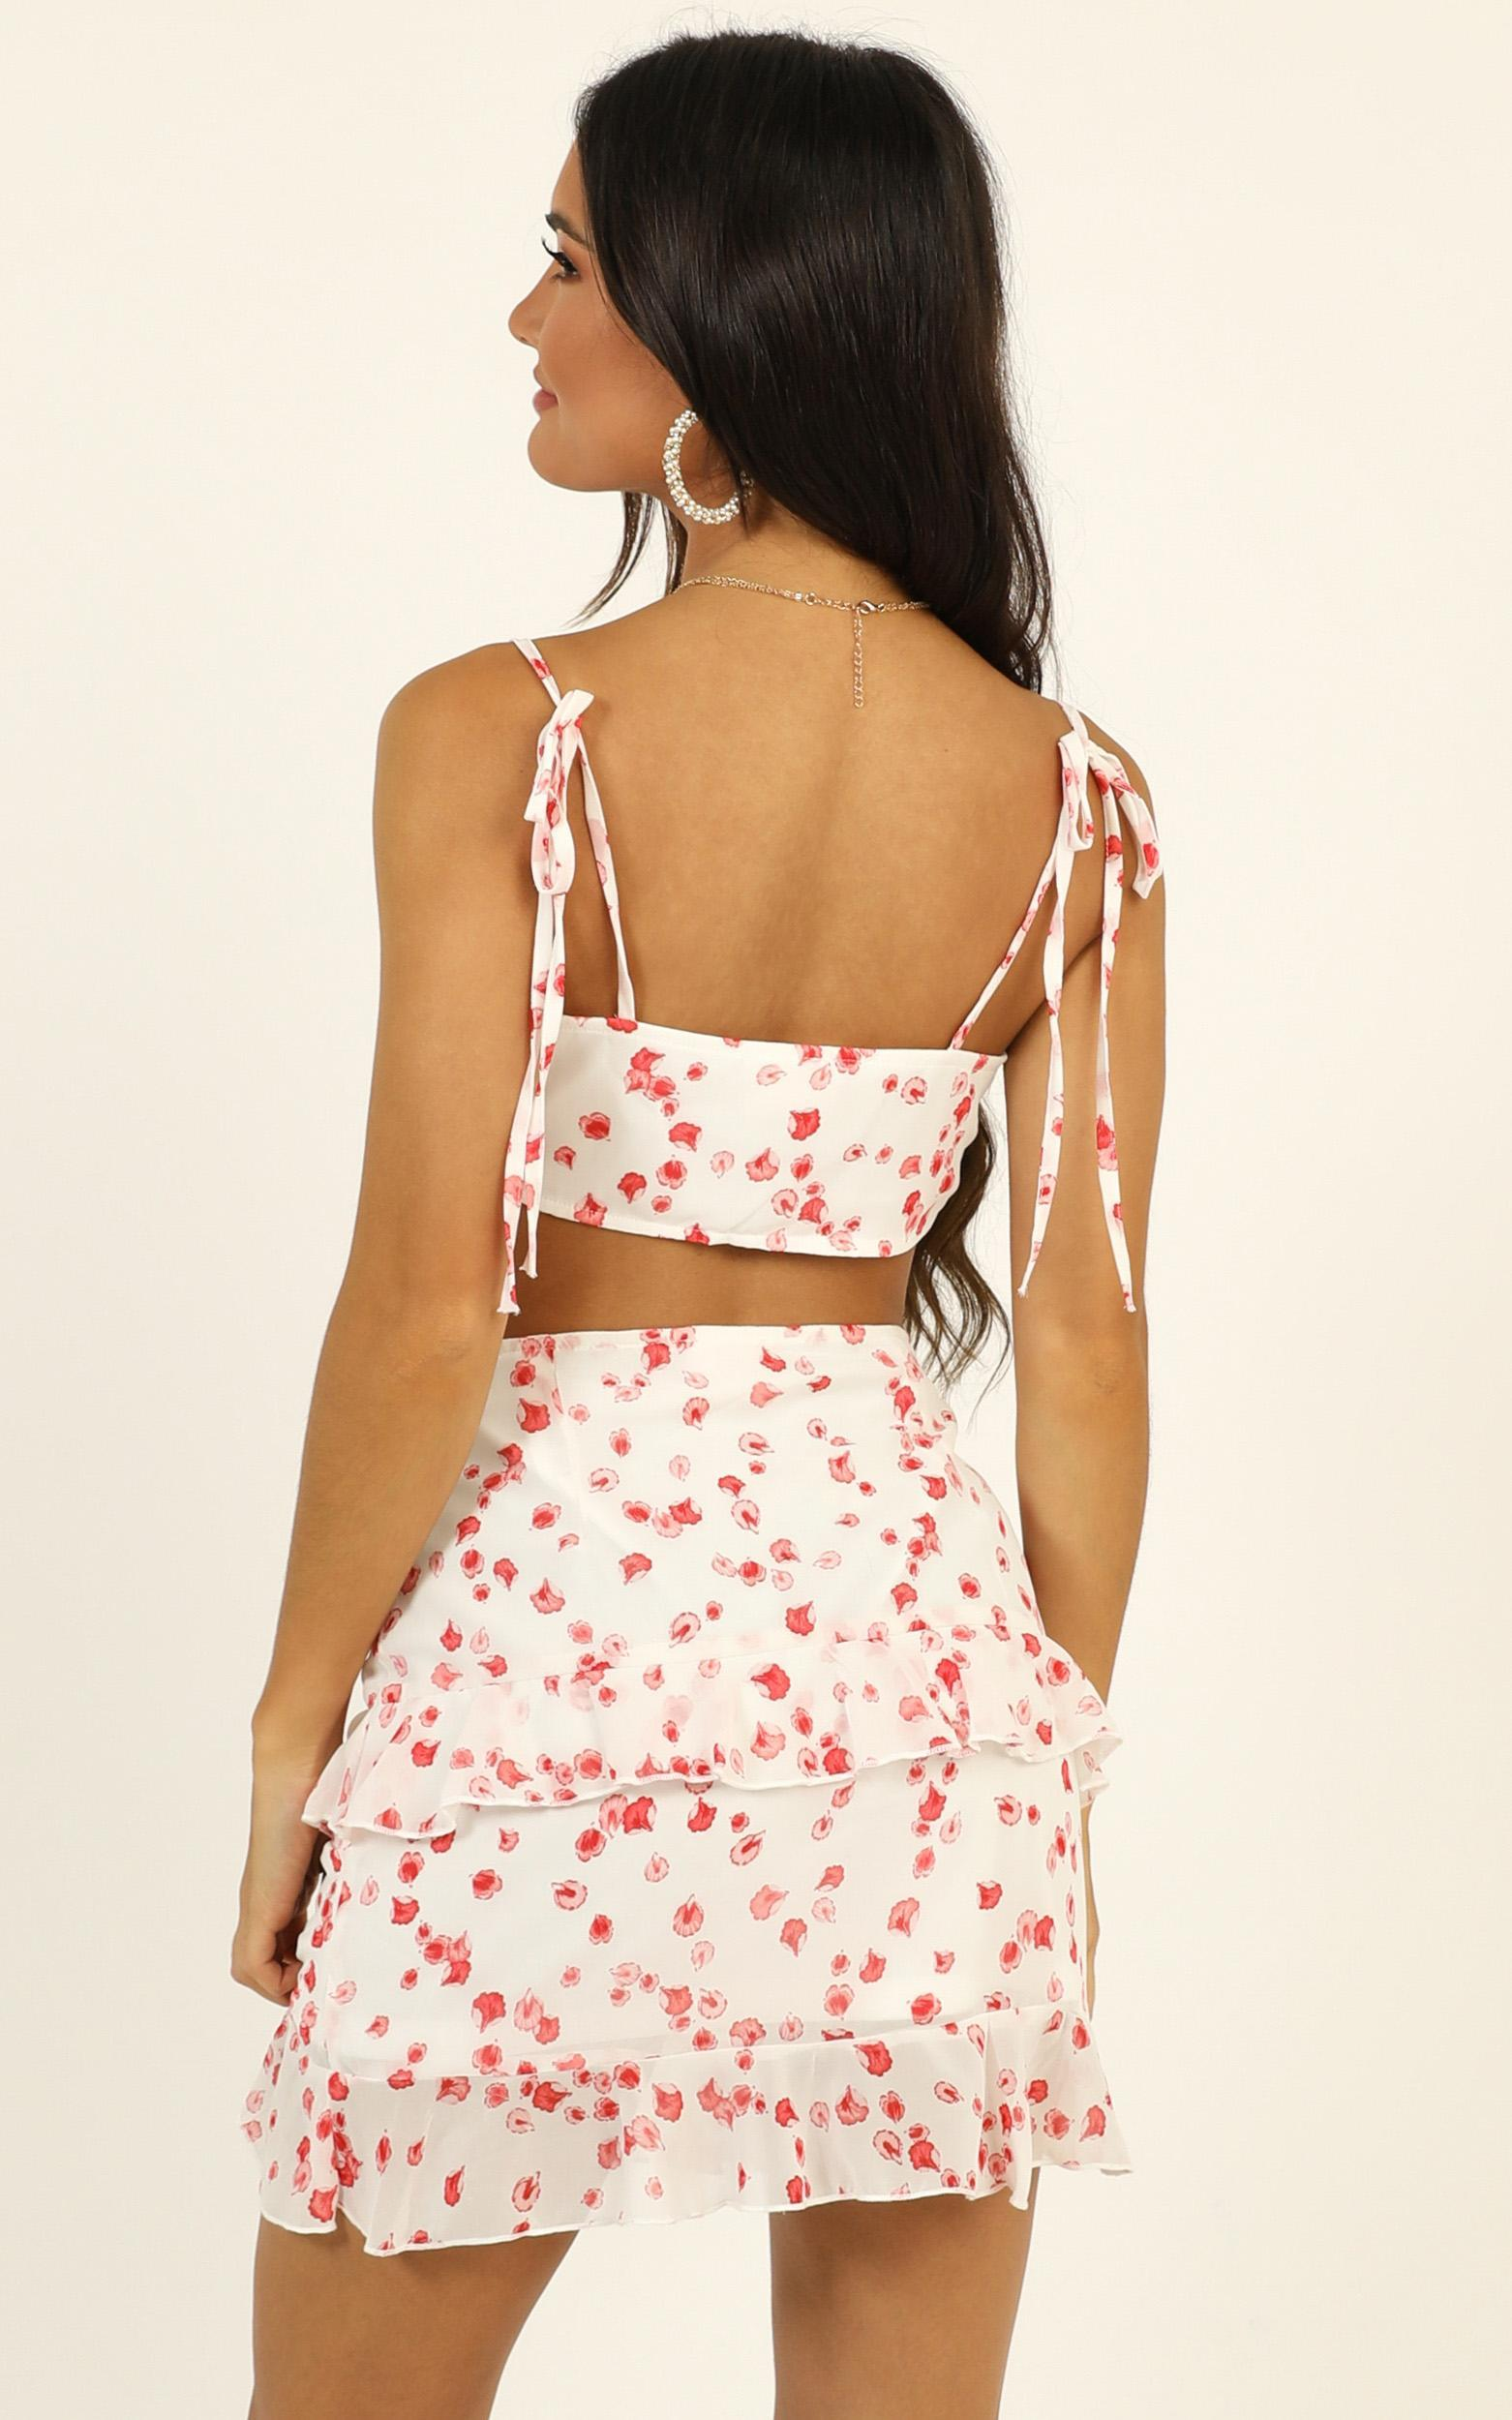 Morning Skies two piece set in white floral - 16 (XXL), White, hi-res image number null